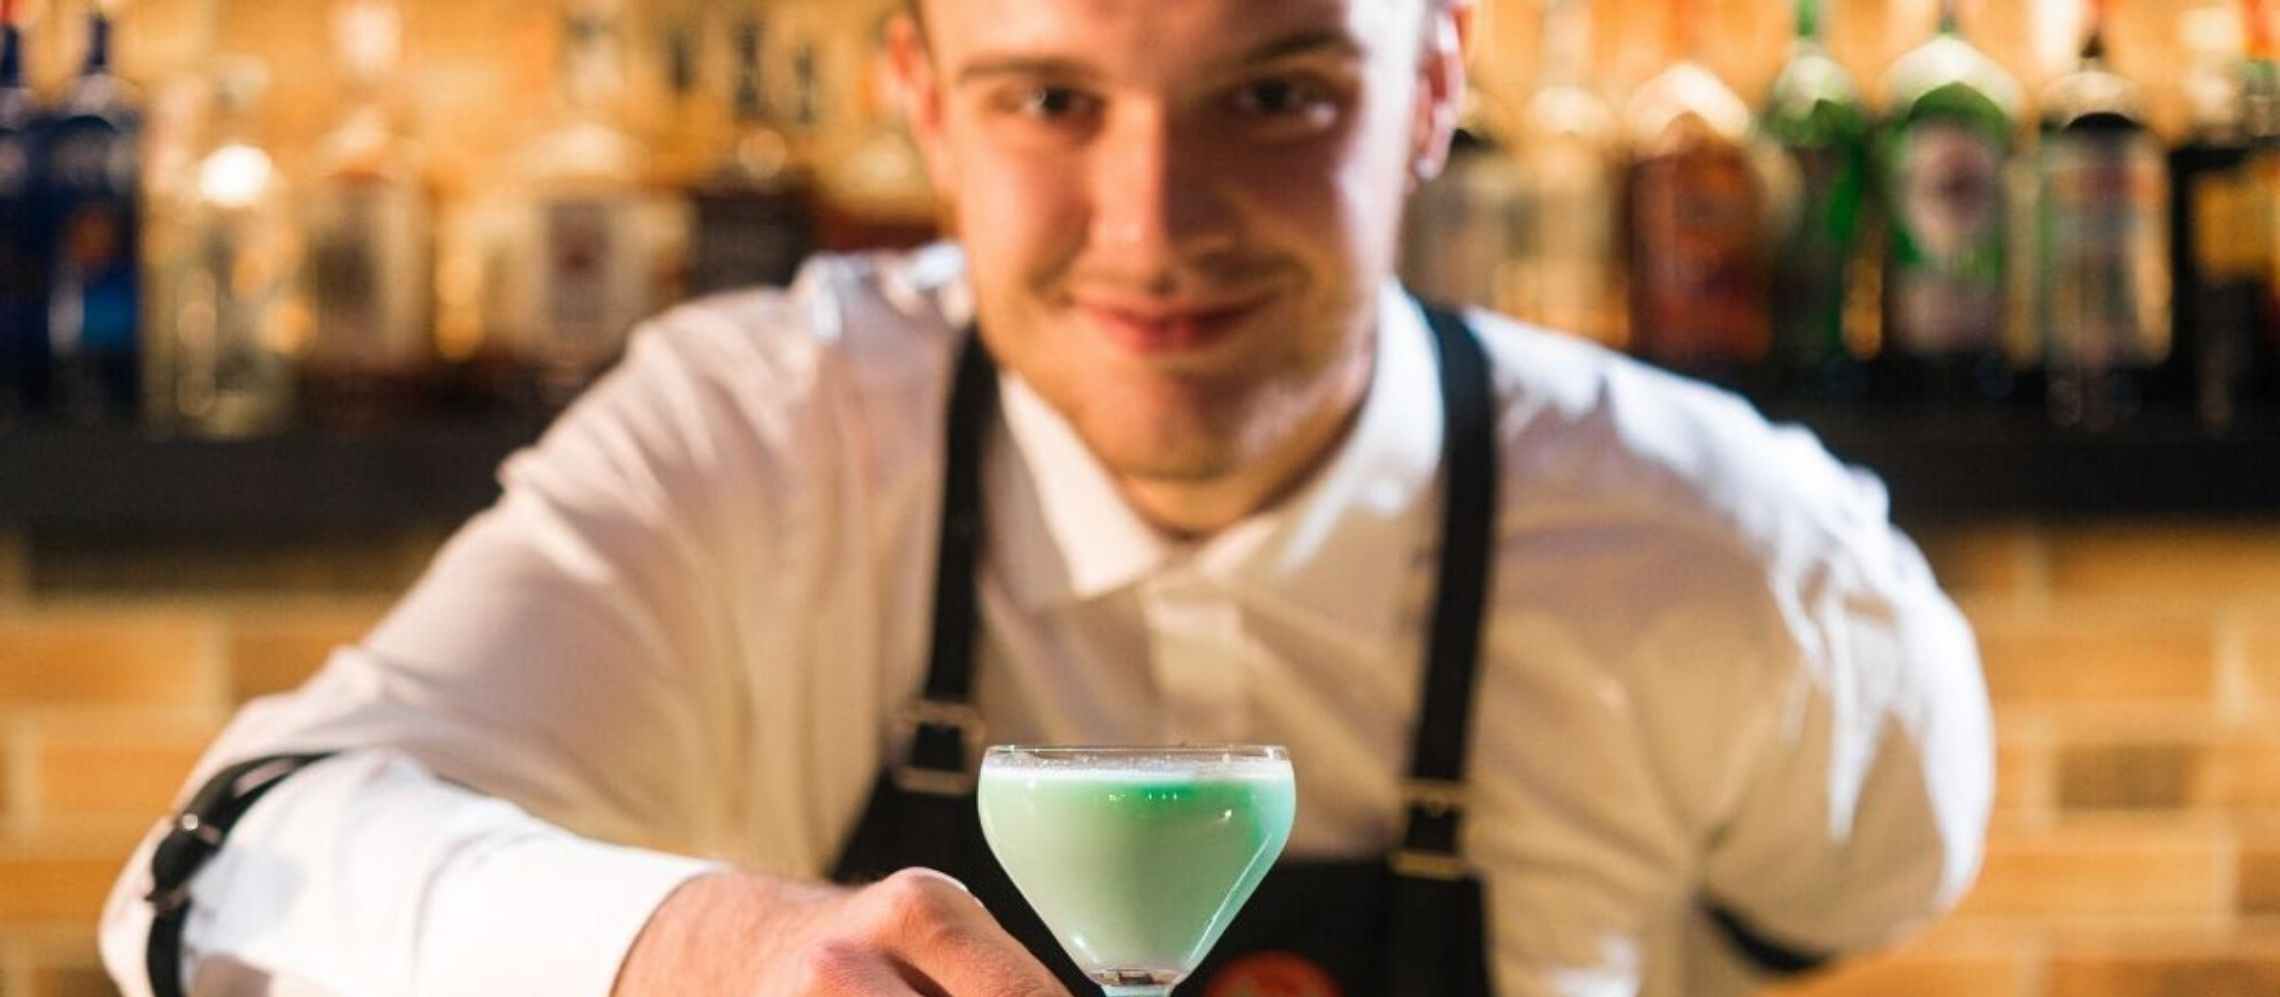 Photo for: Get Drinks Delivered Offers A Level Playing Field For All UK Online And Home Delivery Drinks Services